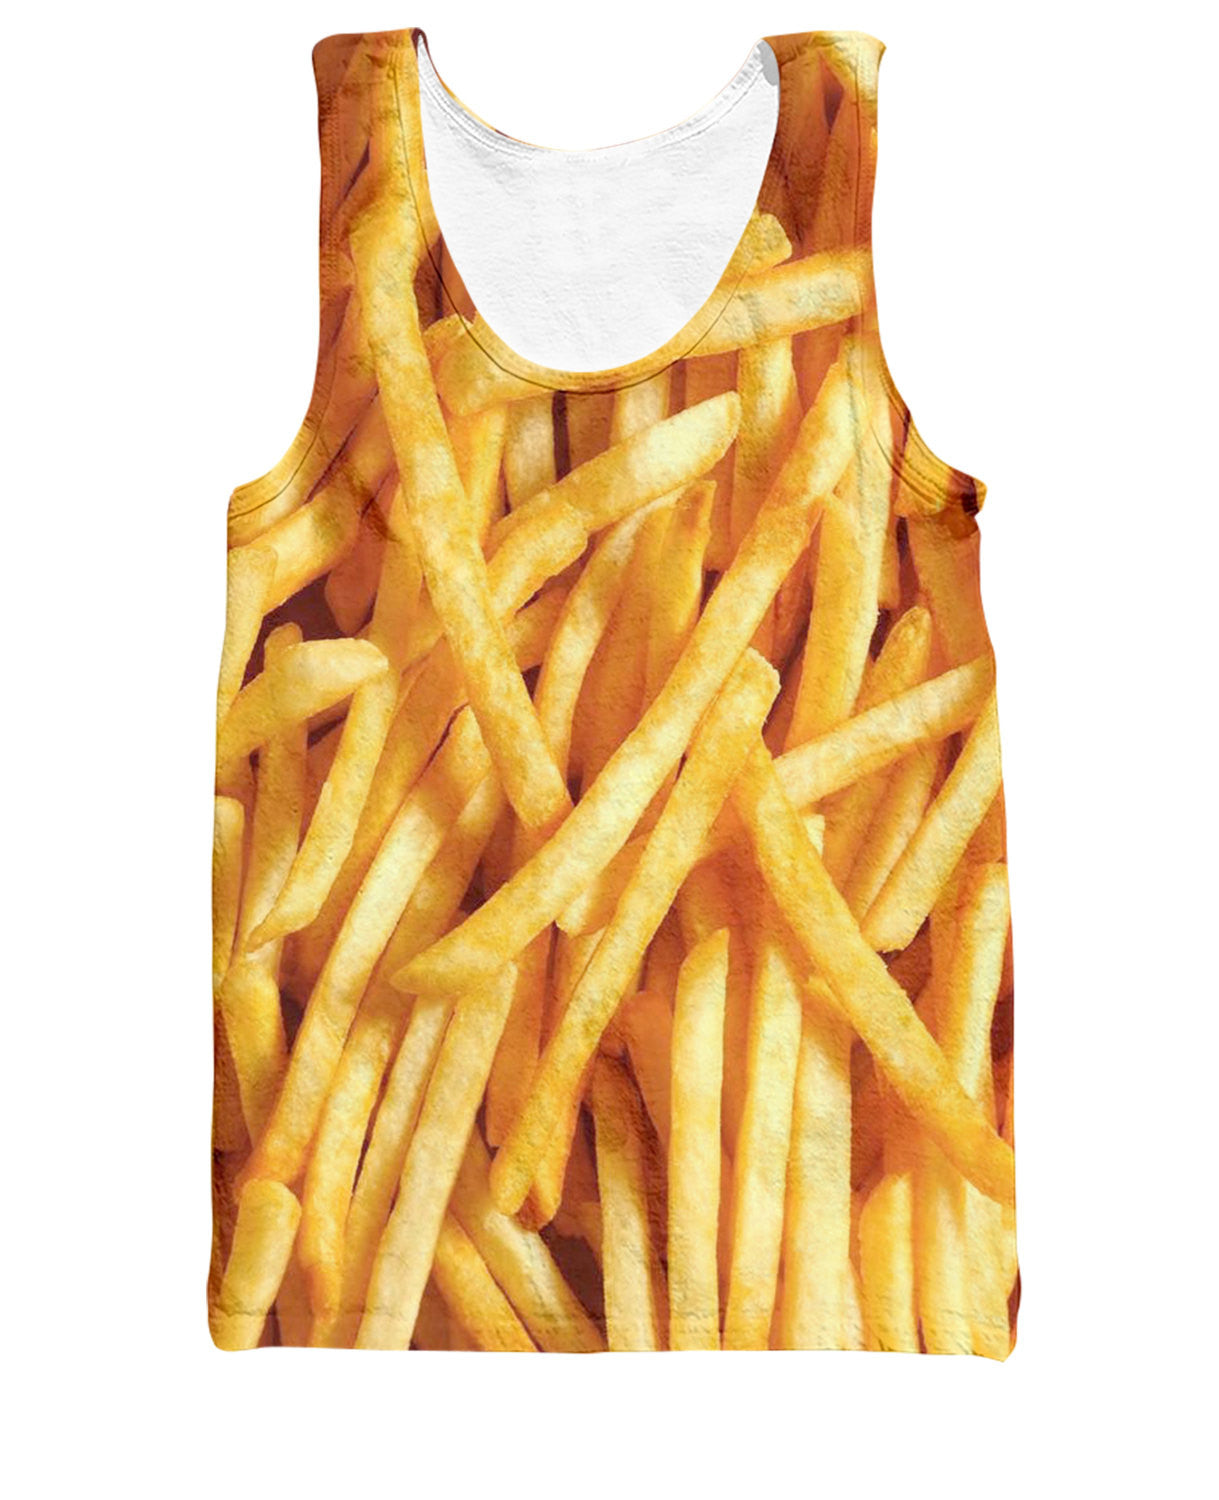 French Fries Tank top - Shweeet